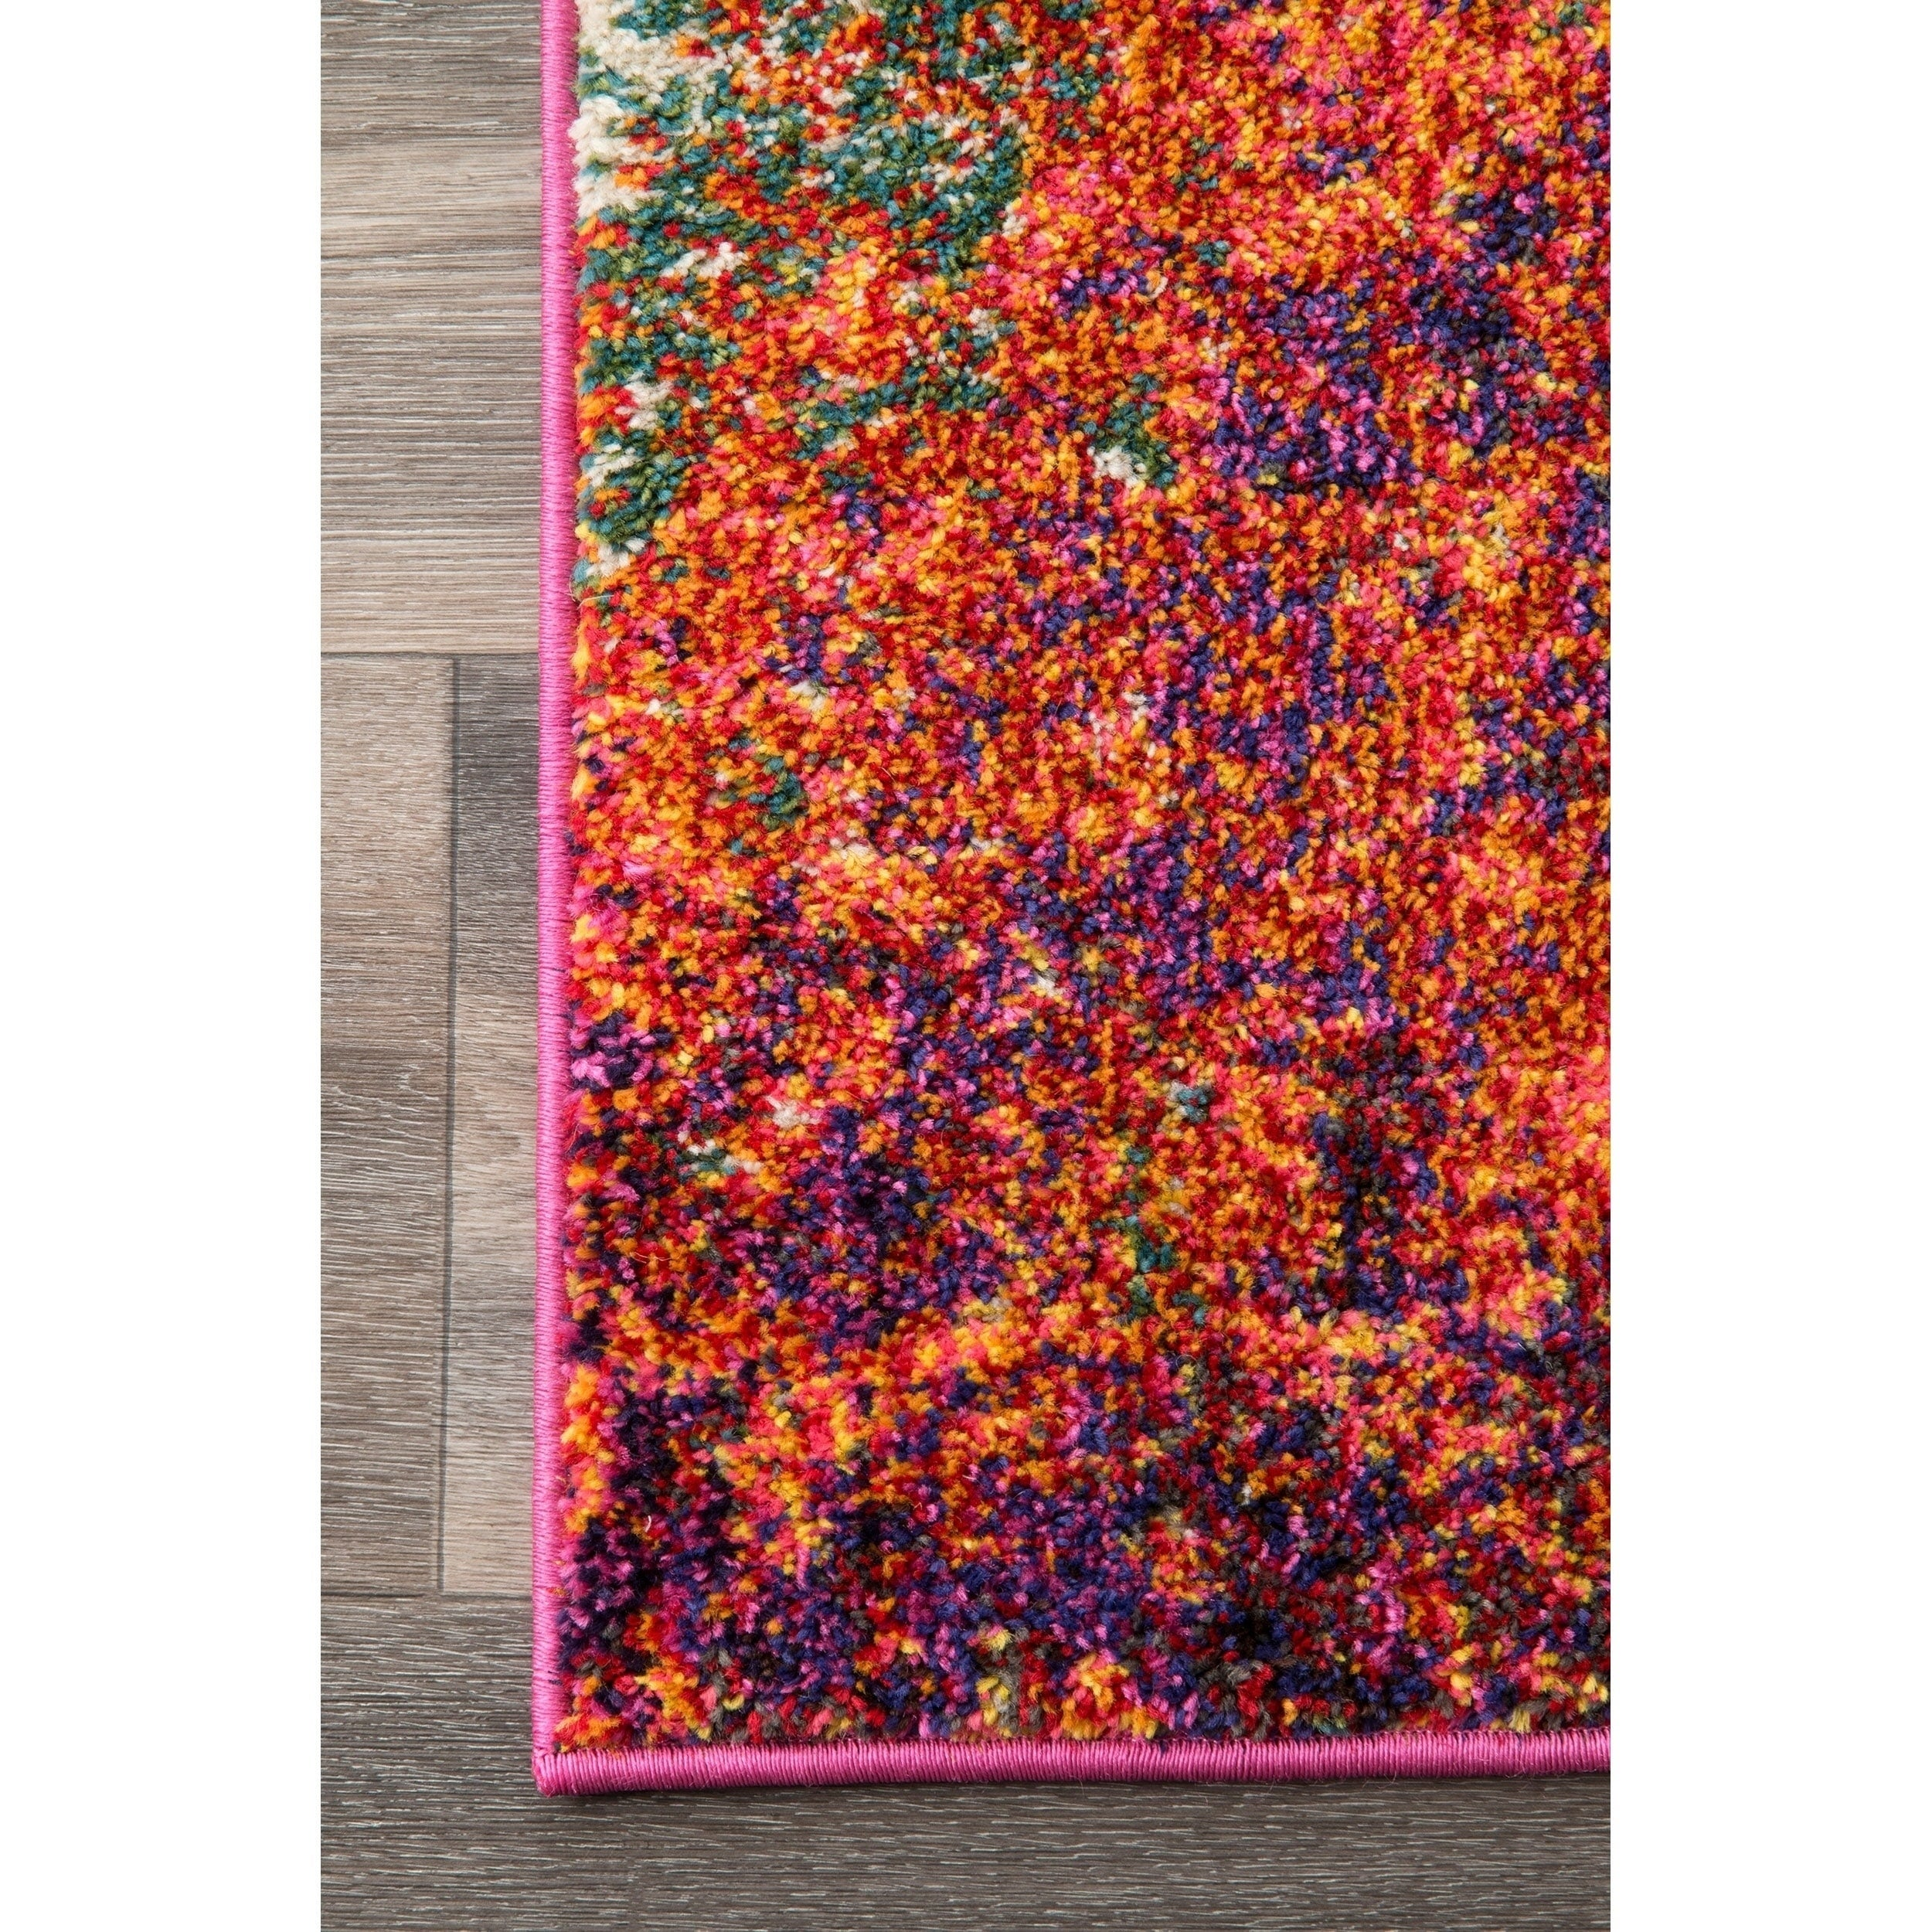 18cceaf10af3b1 Shop nuLOOM Vintage Inspired Abstract Fancy Vibrant Area Rug - On Sale -  Free Shipping Today - Overstock - 14253517